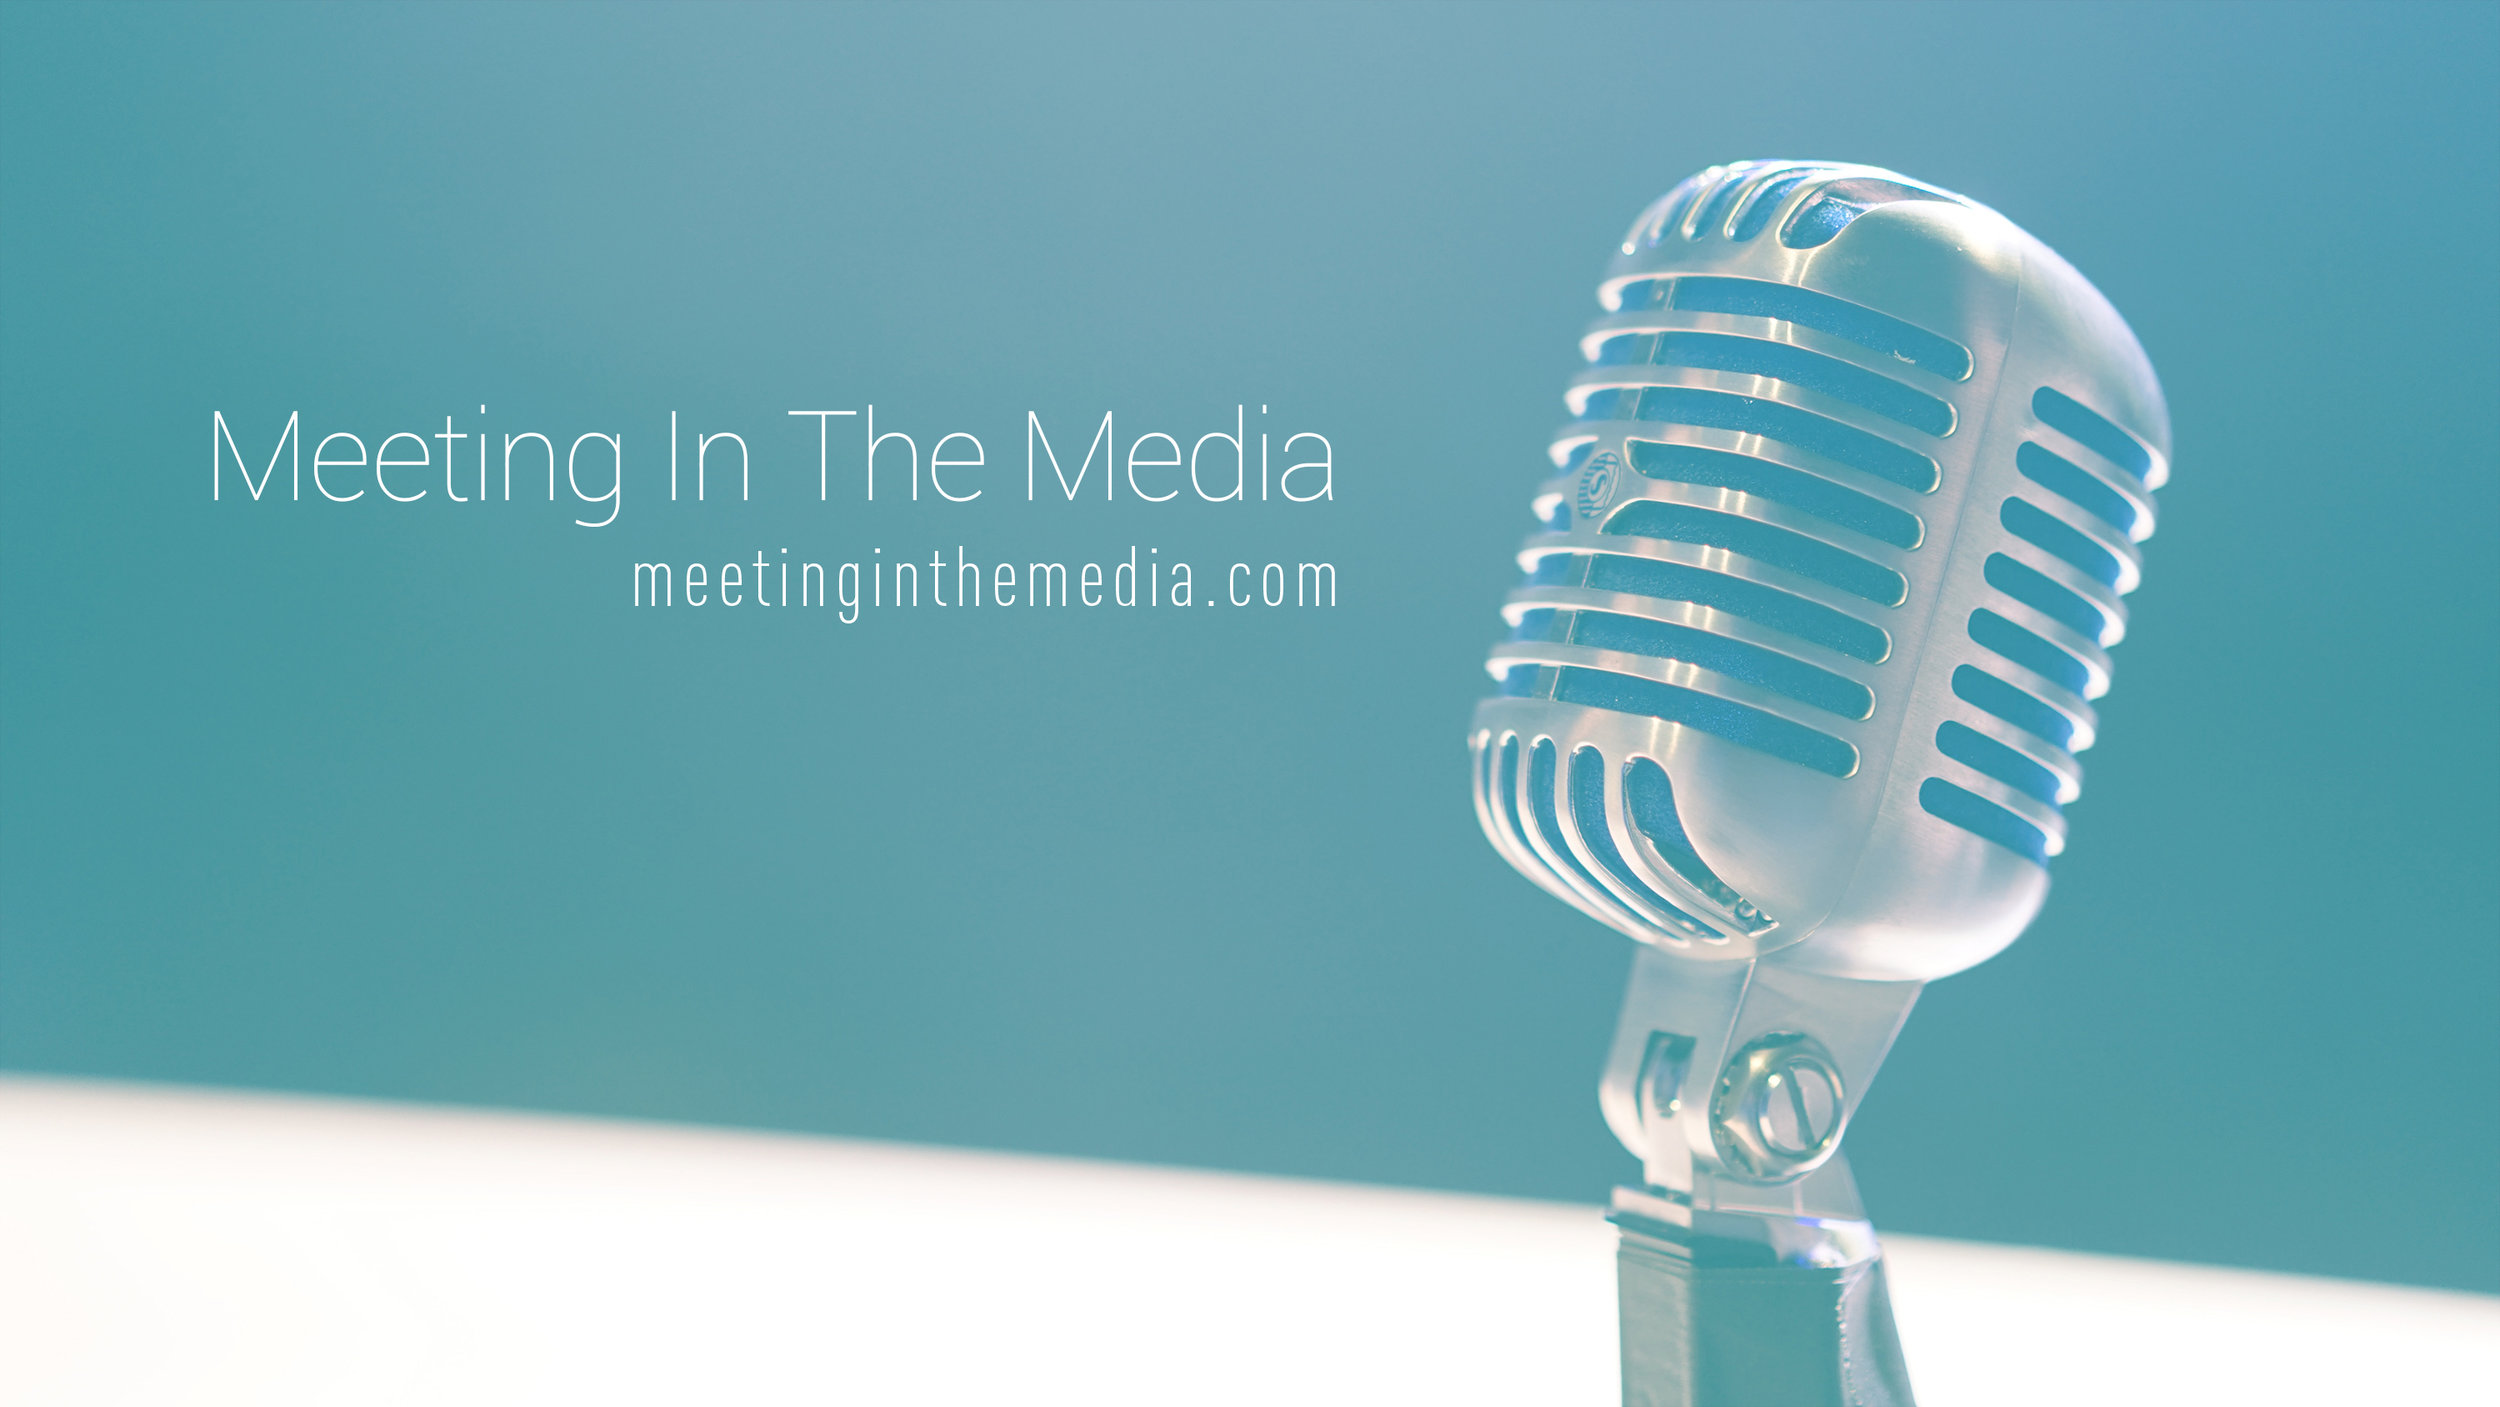 Meetinginthemedia_Banner_01.jpg